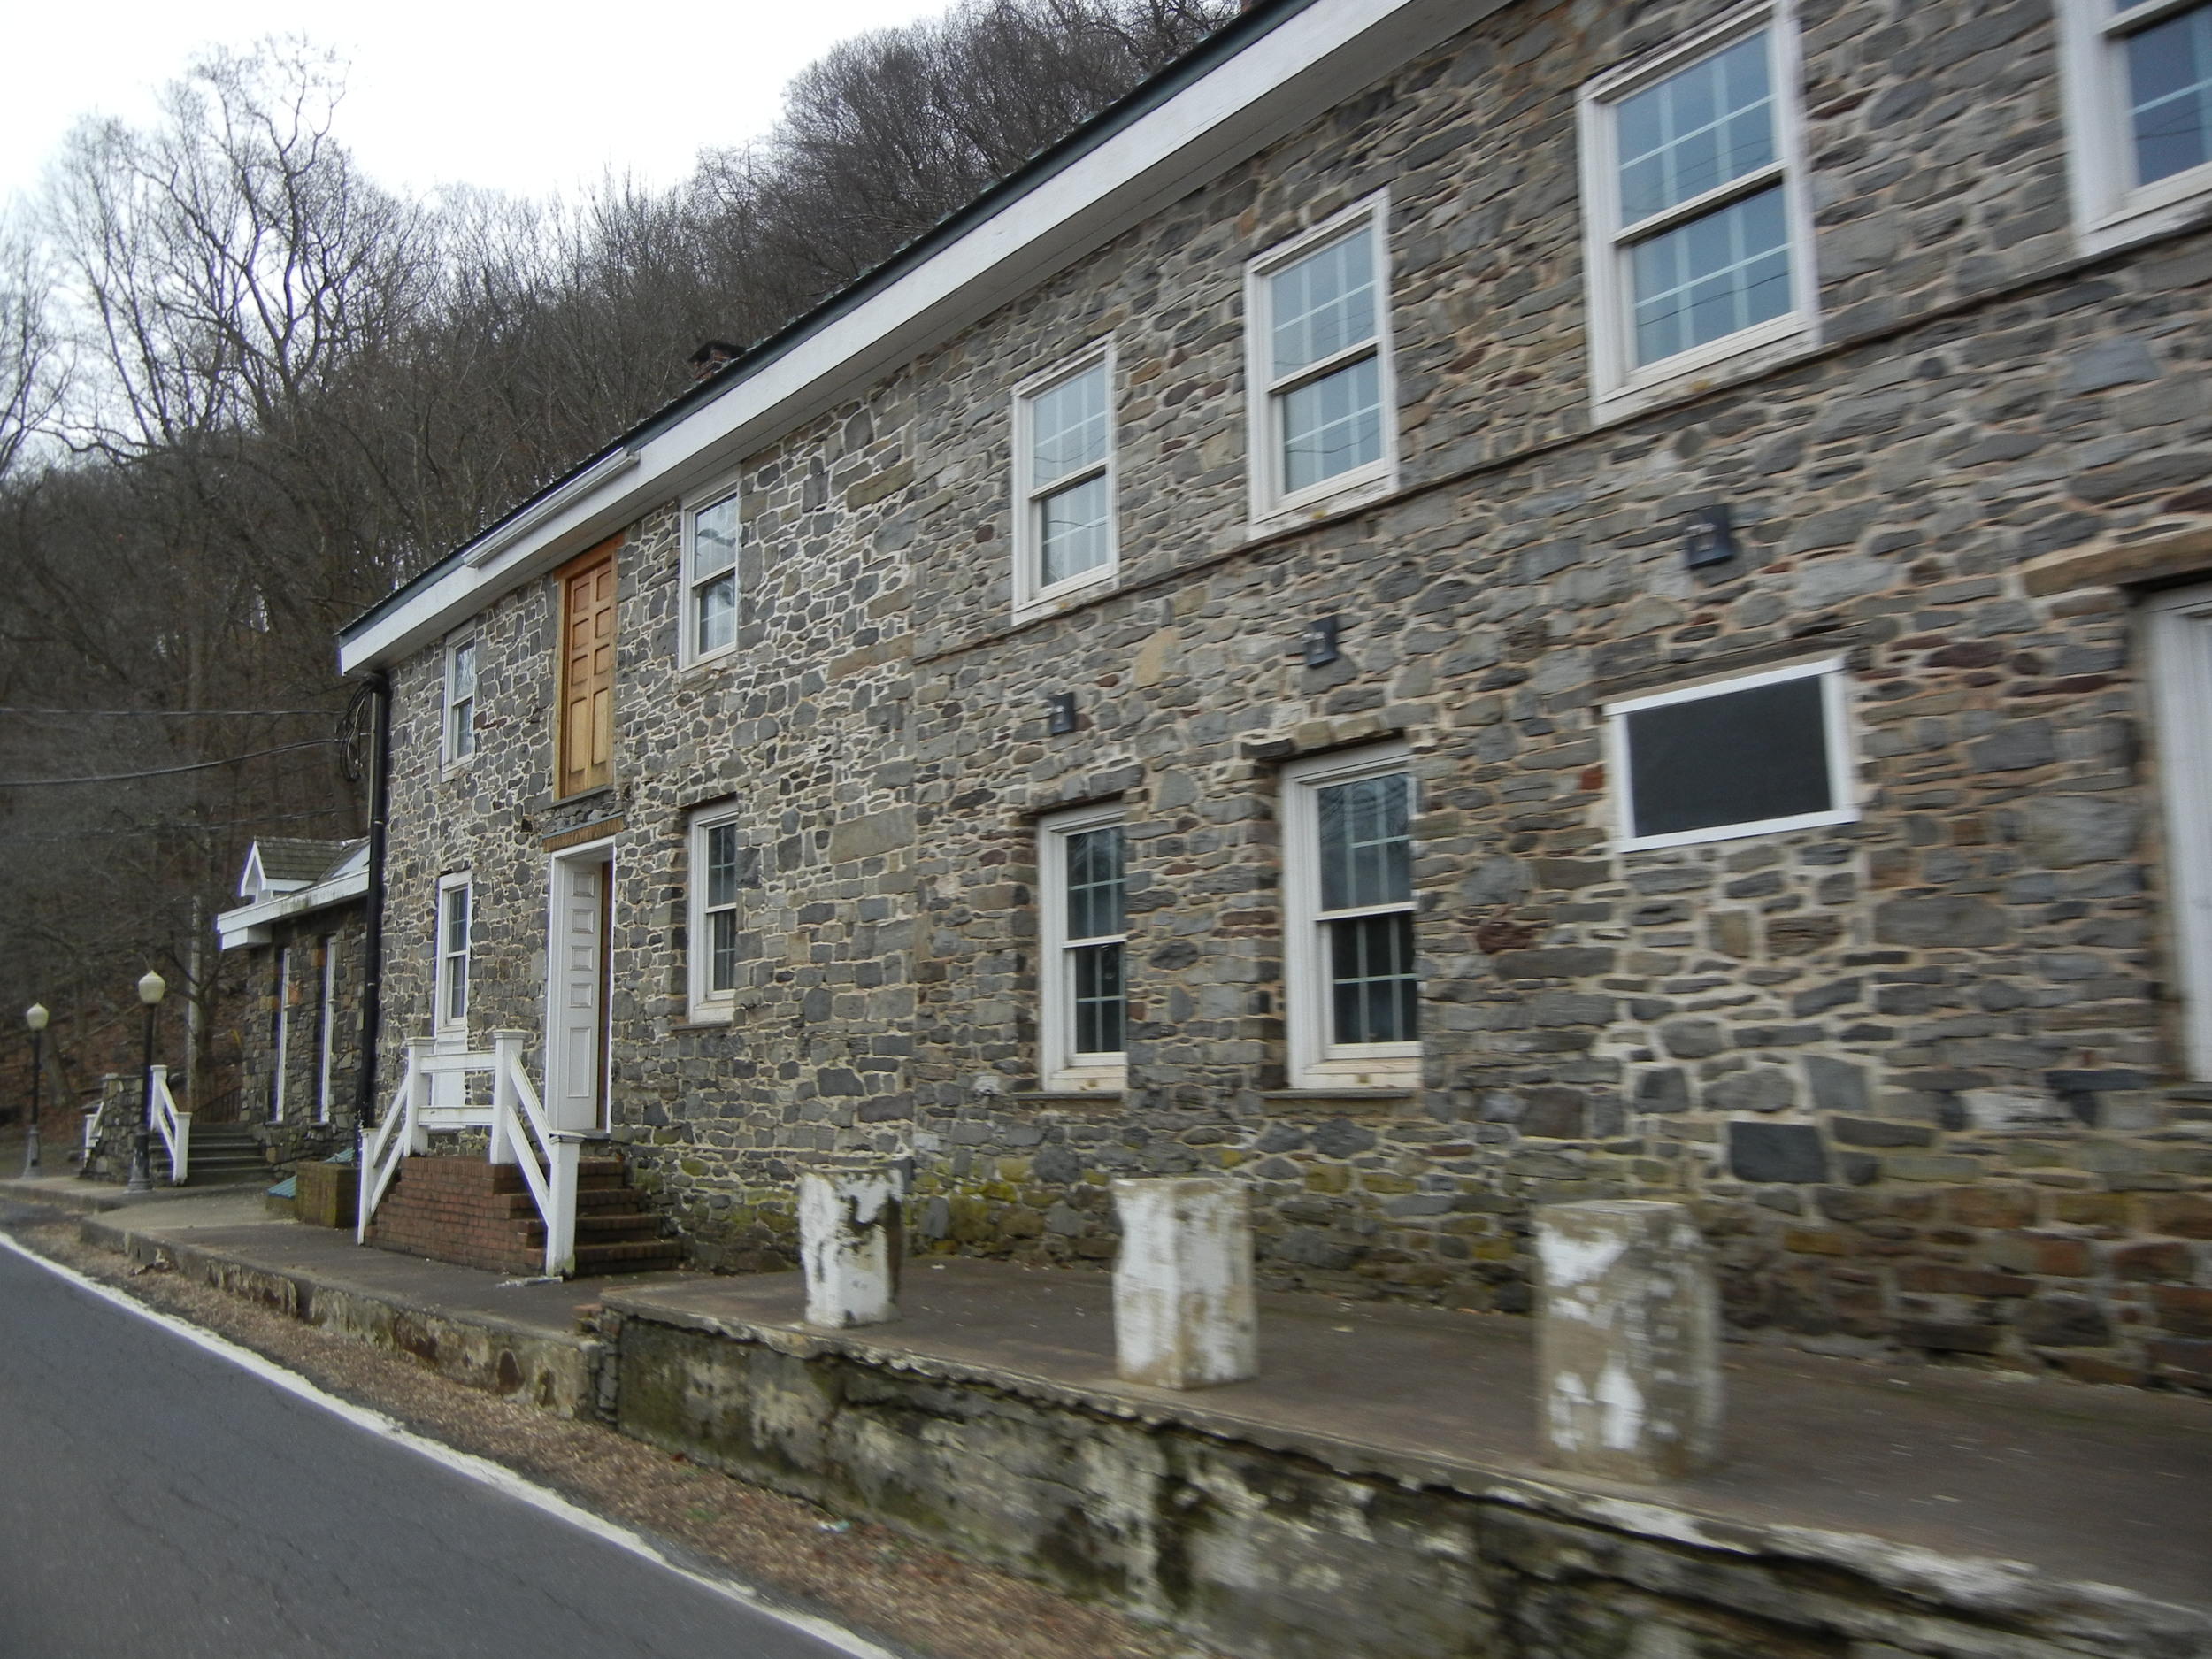 The shuttered Mountainside Inn, which proclaims to be one of the oldest inns in America.